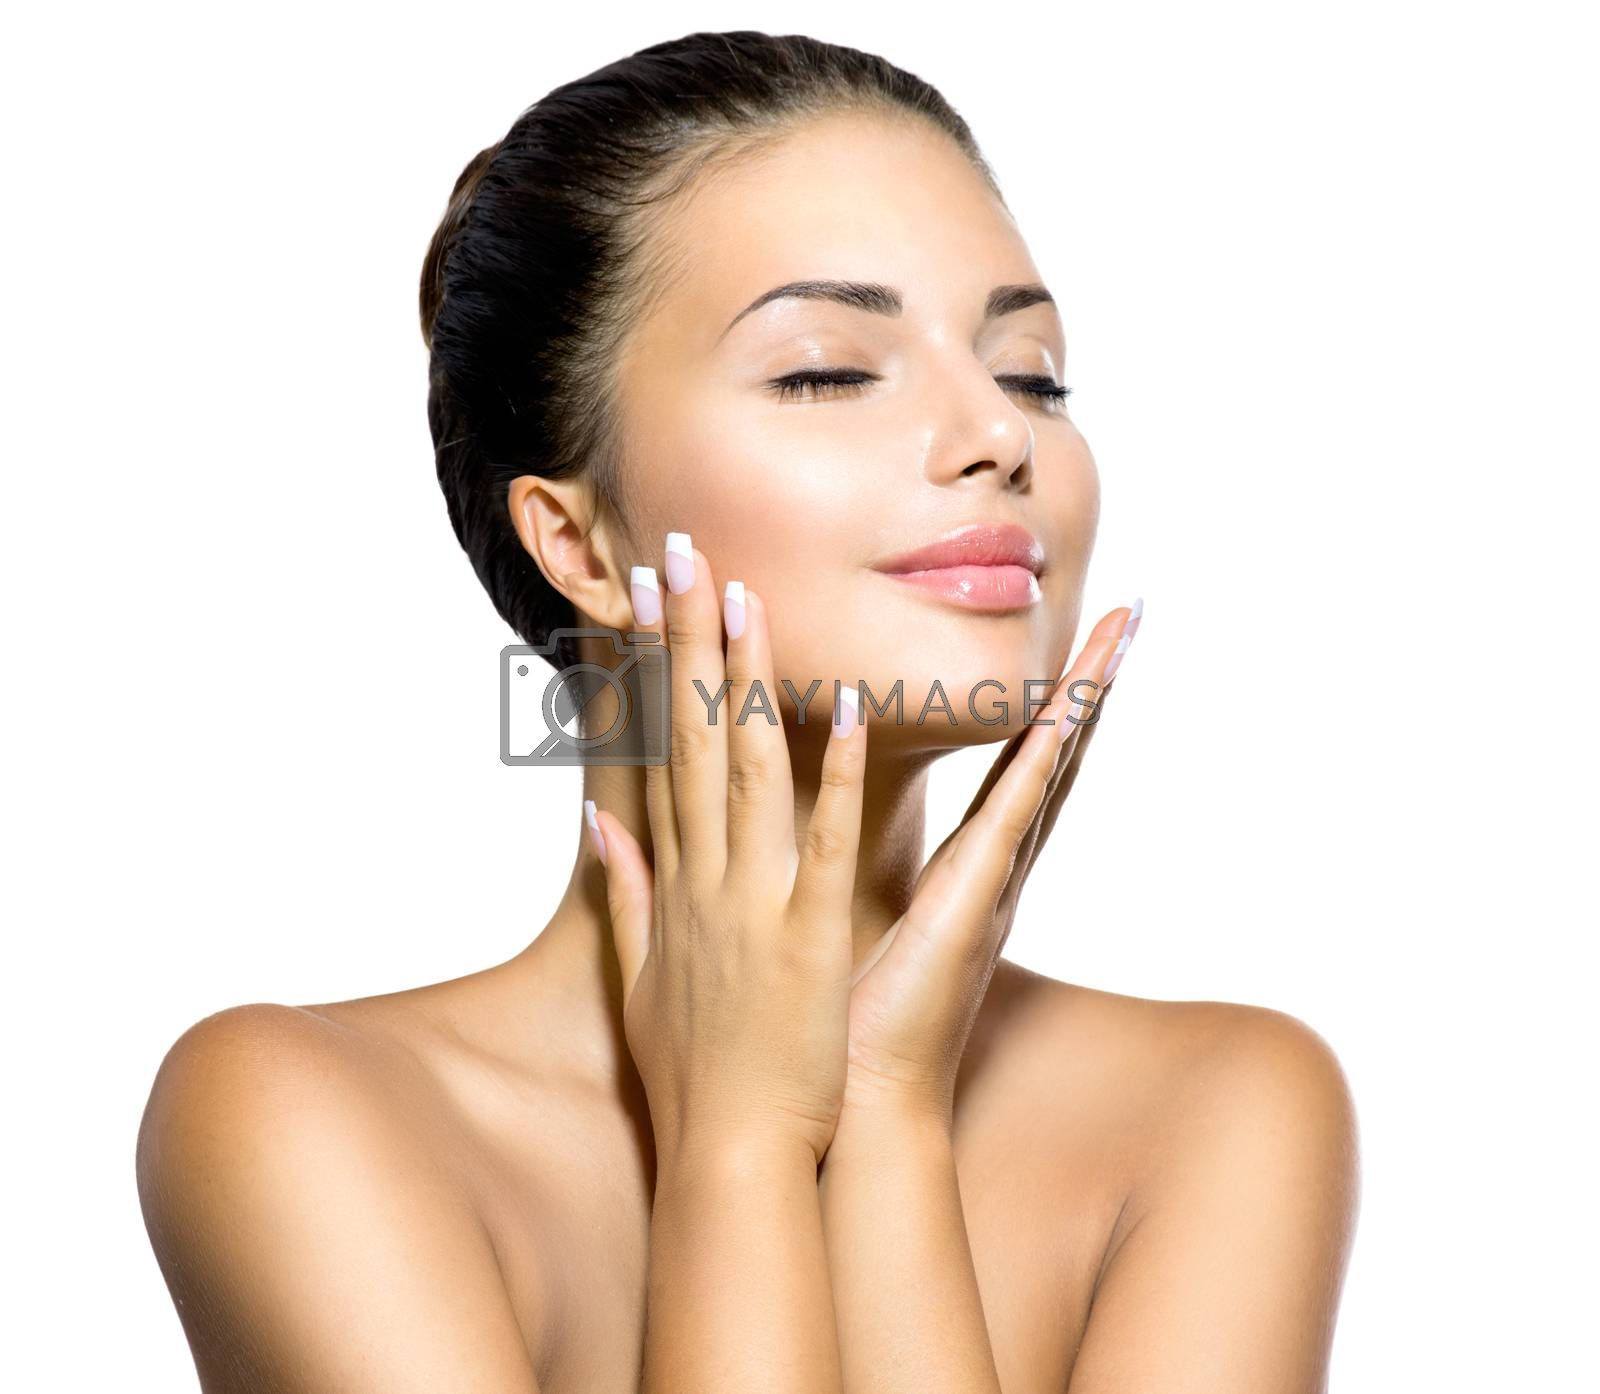 Royalty free image of Beauty Woman. Beautiful Young Female touching Her Skin by SubbotinaA